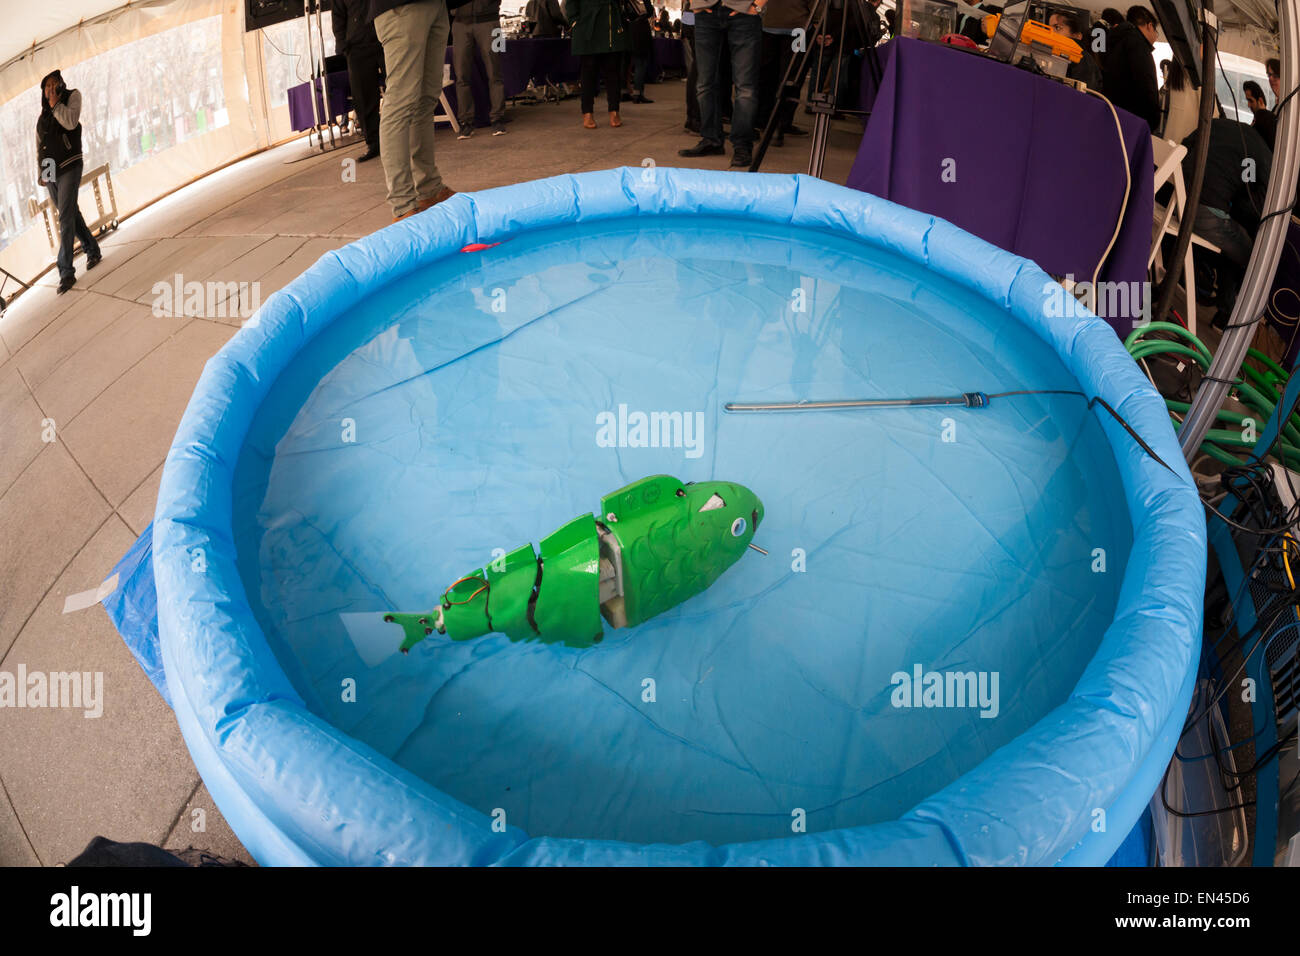 Ph.D candidate Paul Phamduy's robotic fish, built in collaboration with other students, happy floats in a pool - Stock Image